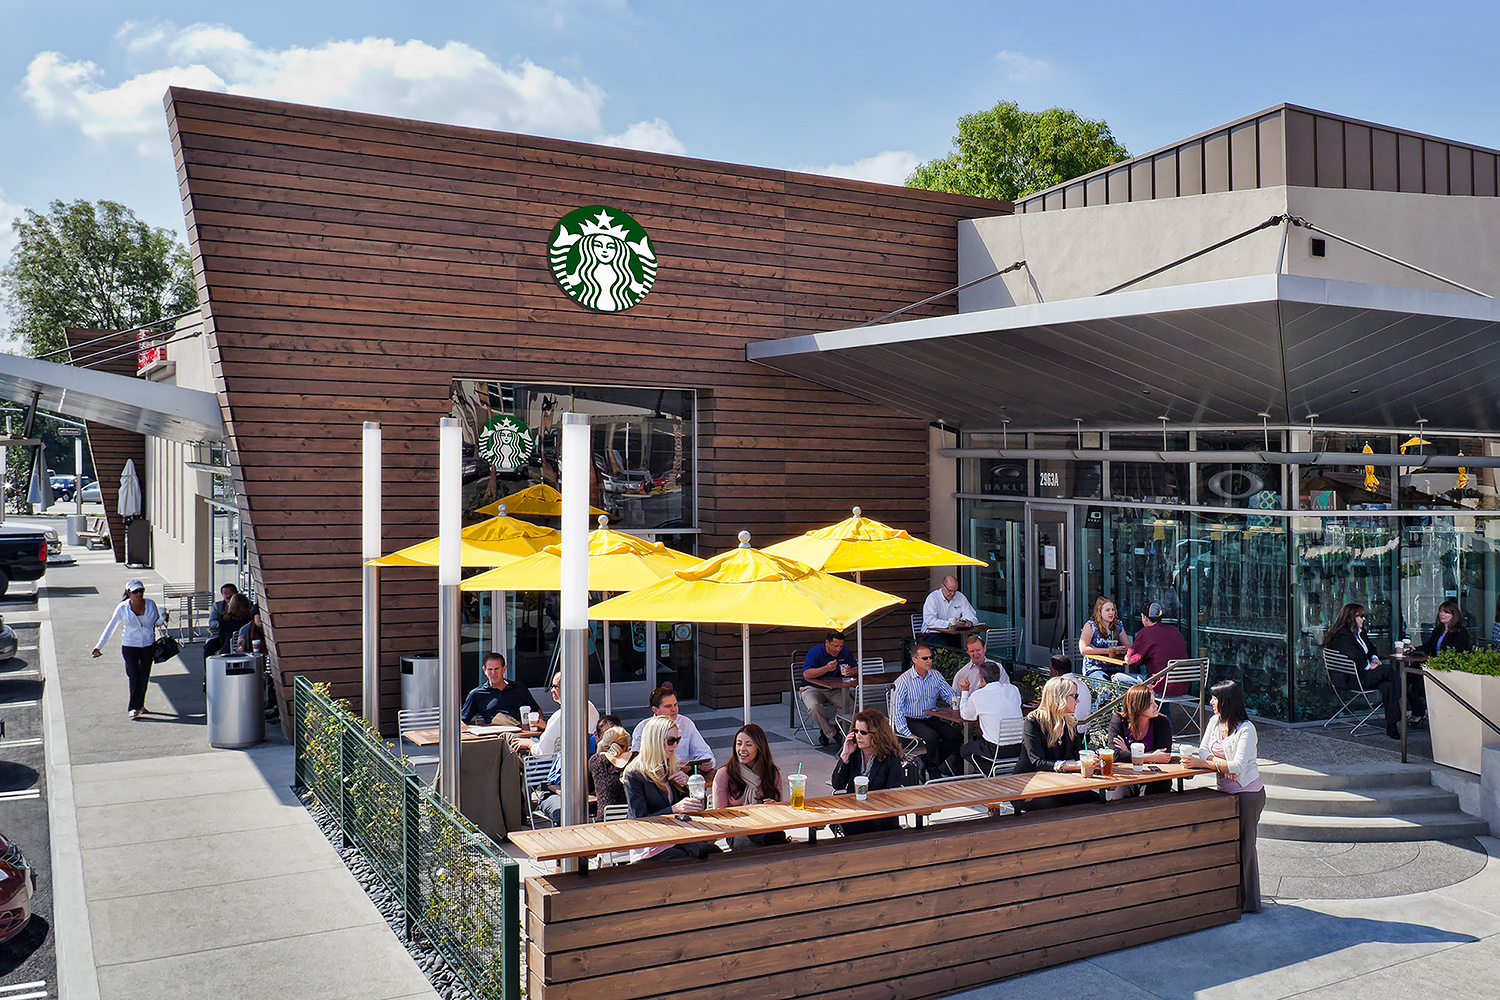 Starbucks Patio with People